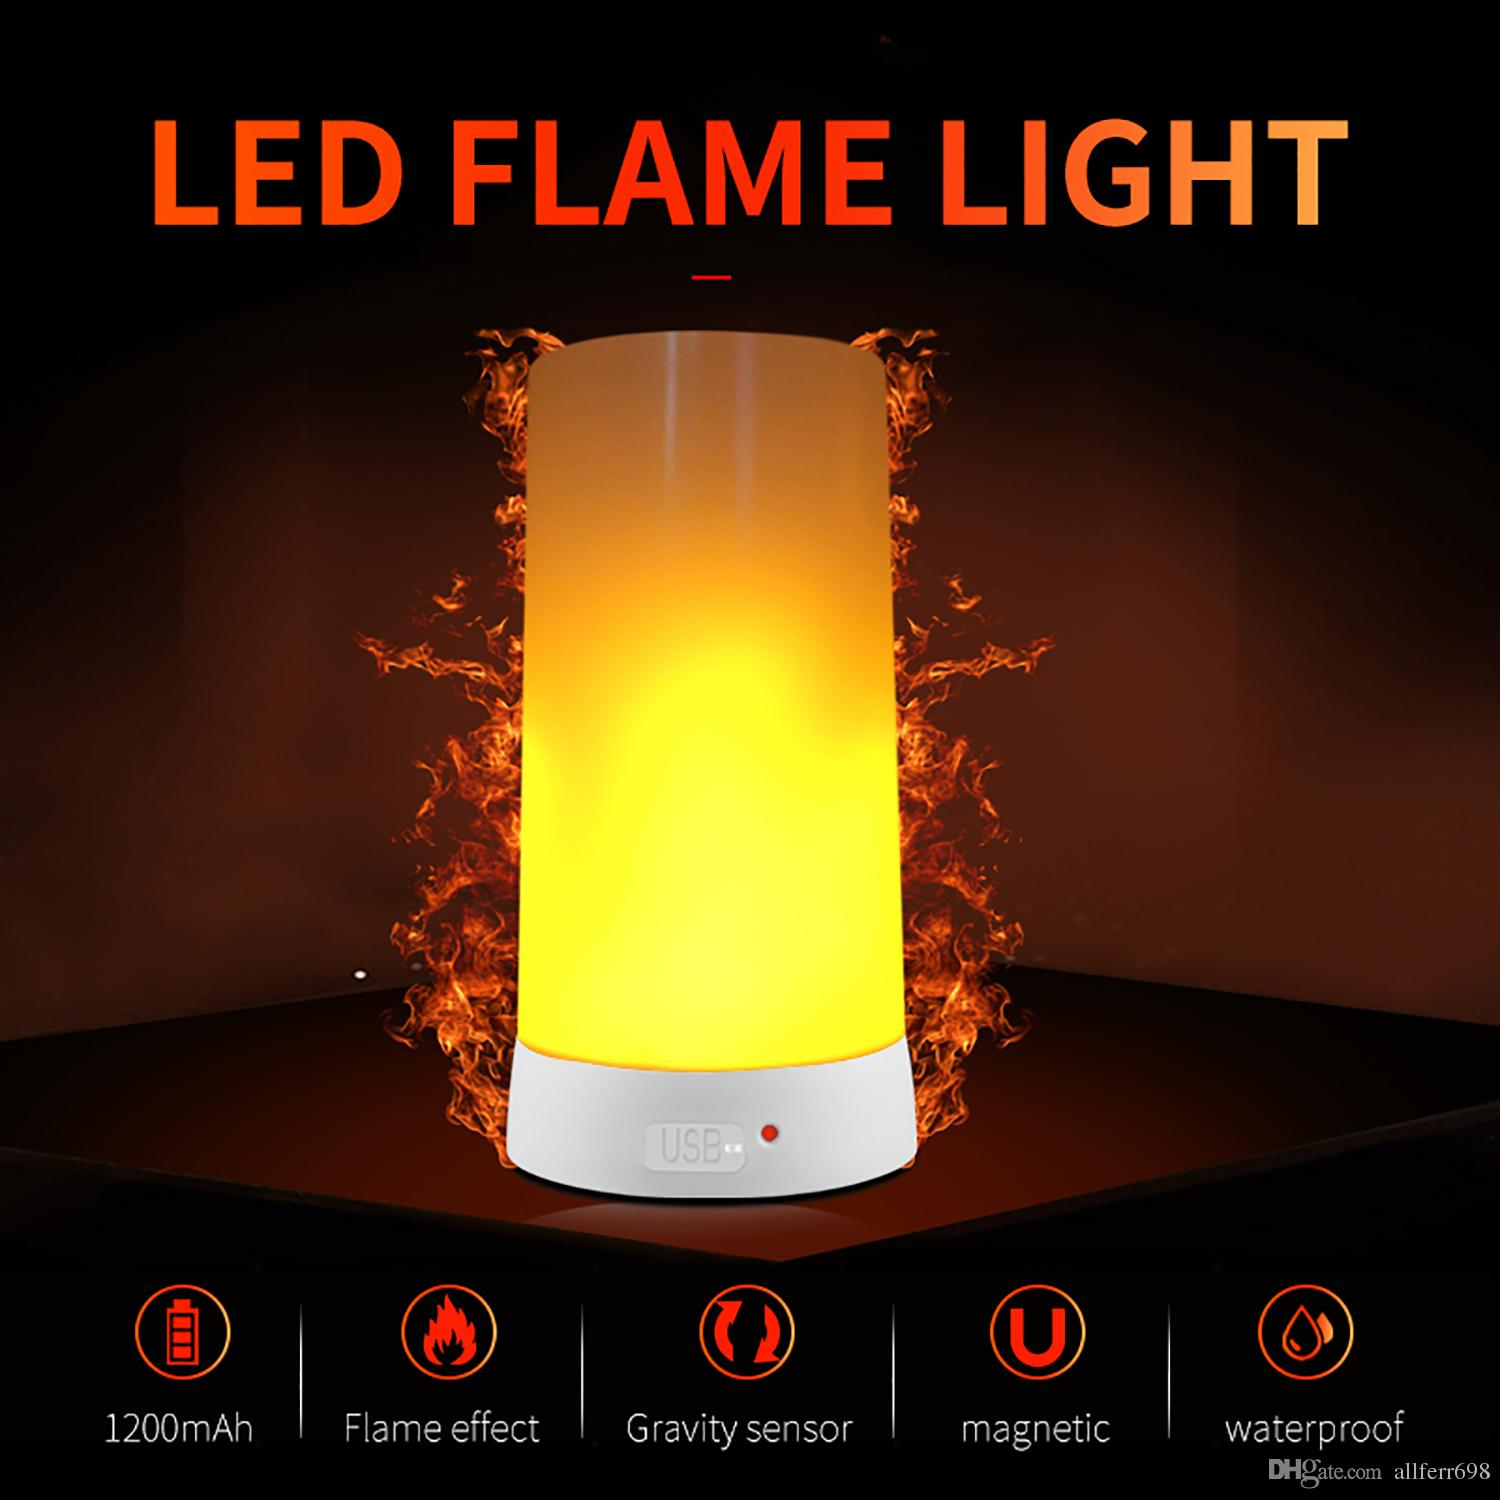 Flame LED effect fire light waterproof indoor and outdoor flash mode simulation 3 magnetic flame LED USB charging light